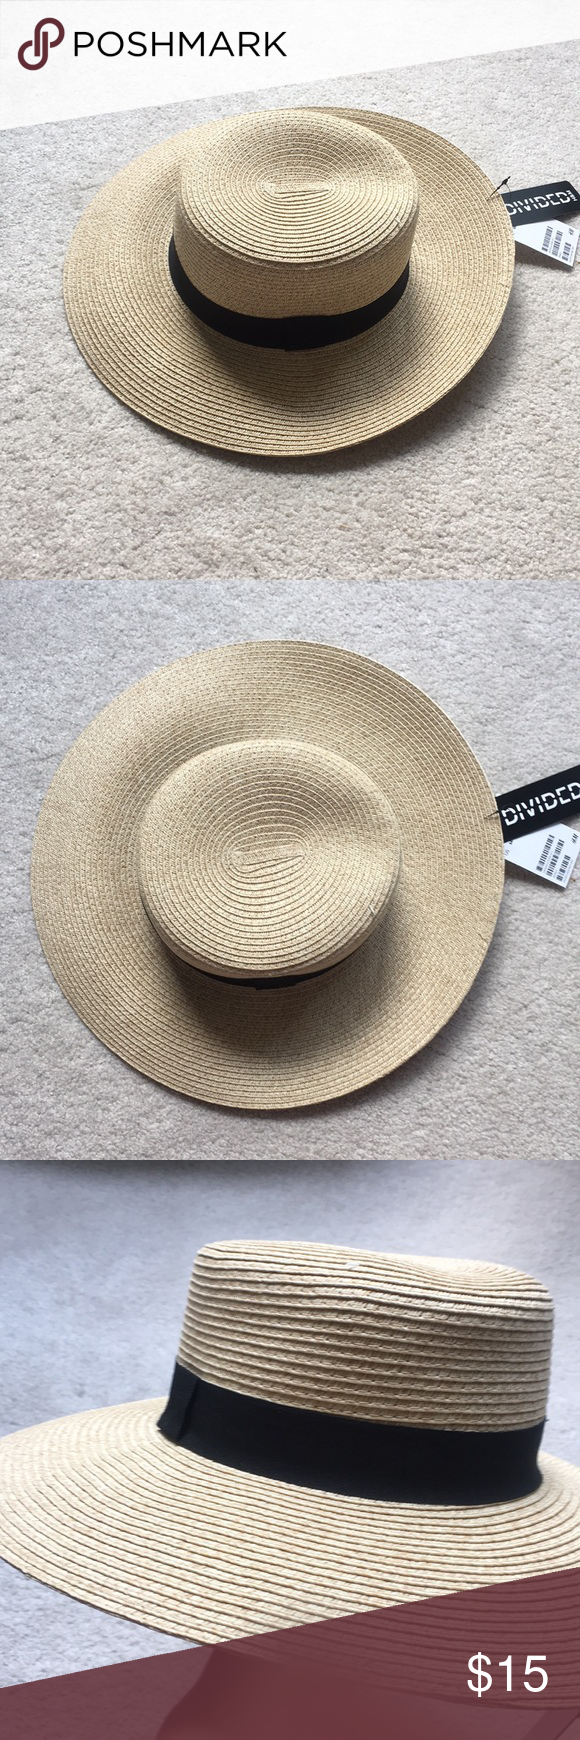 3ed360397 H&M boater hat Very cute, boater style H&M Accessories Hats | My ...